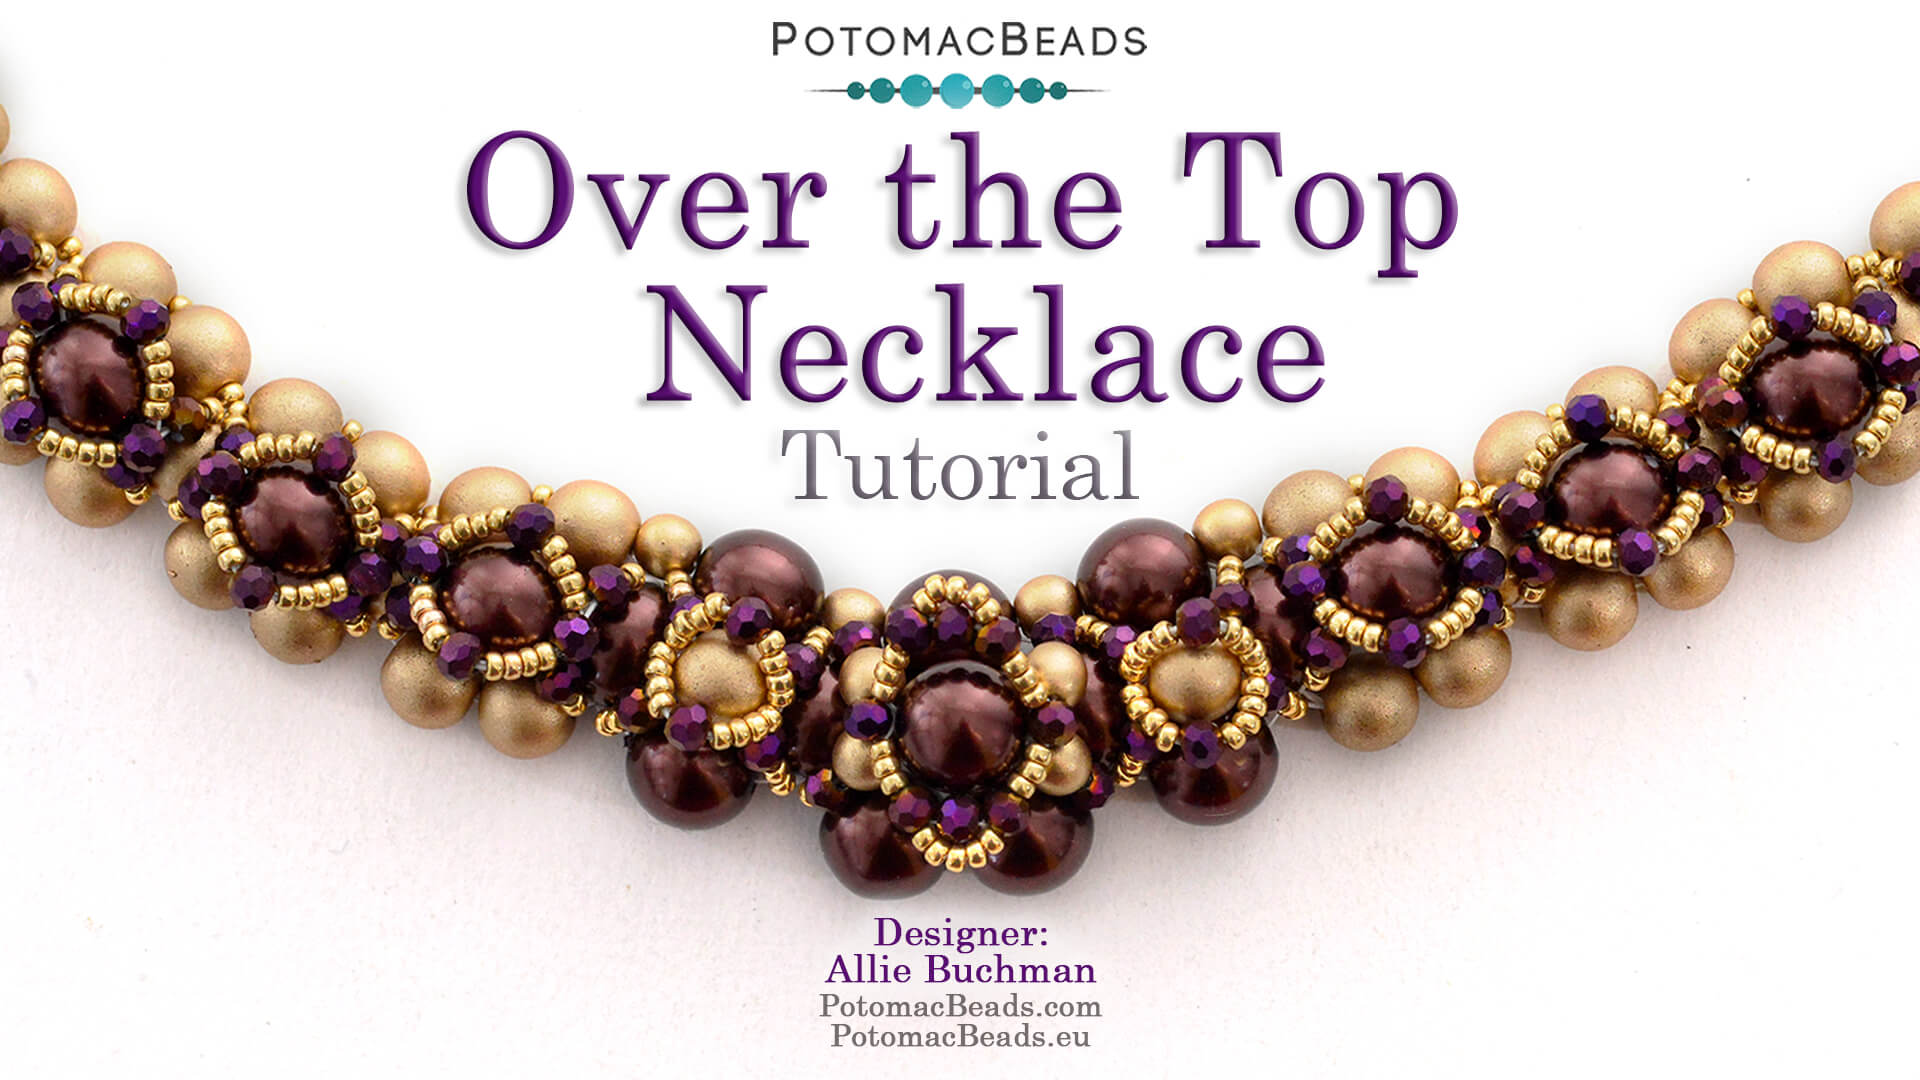 How to Bead / Videos Sorted by Beads / Pearl Videos (Czech & Freshwater) / Over the Top Necklace Tutorial